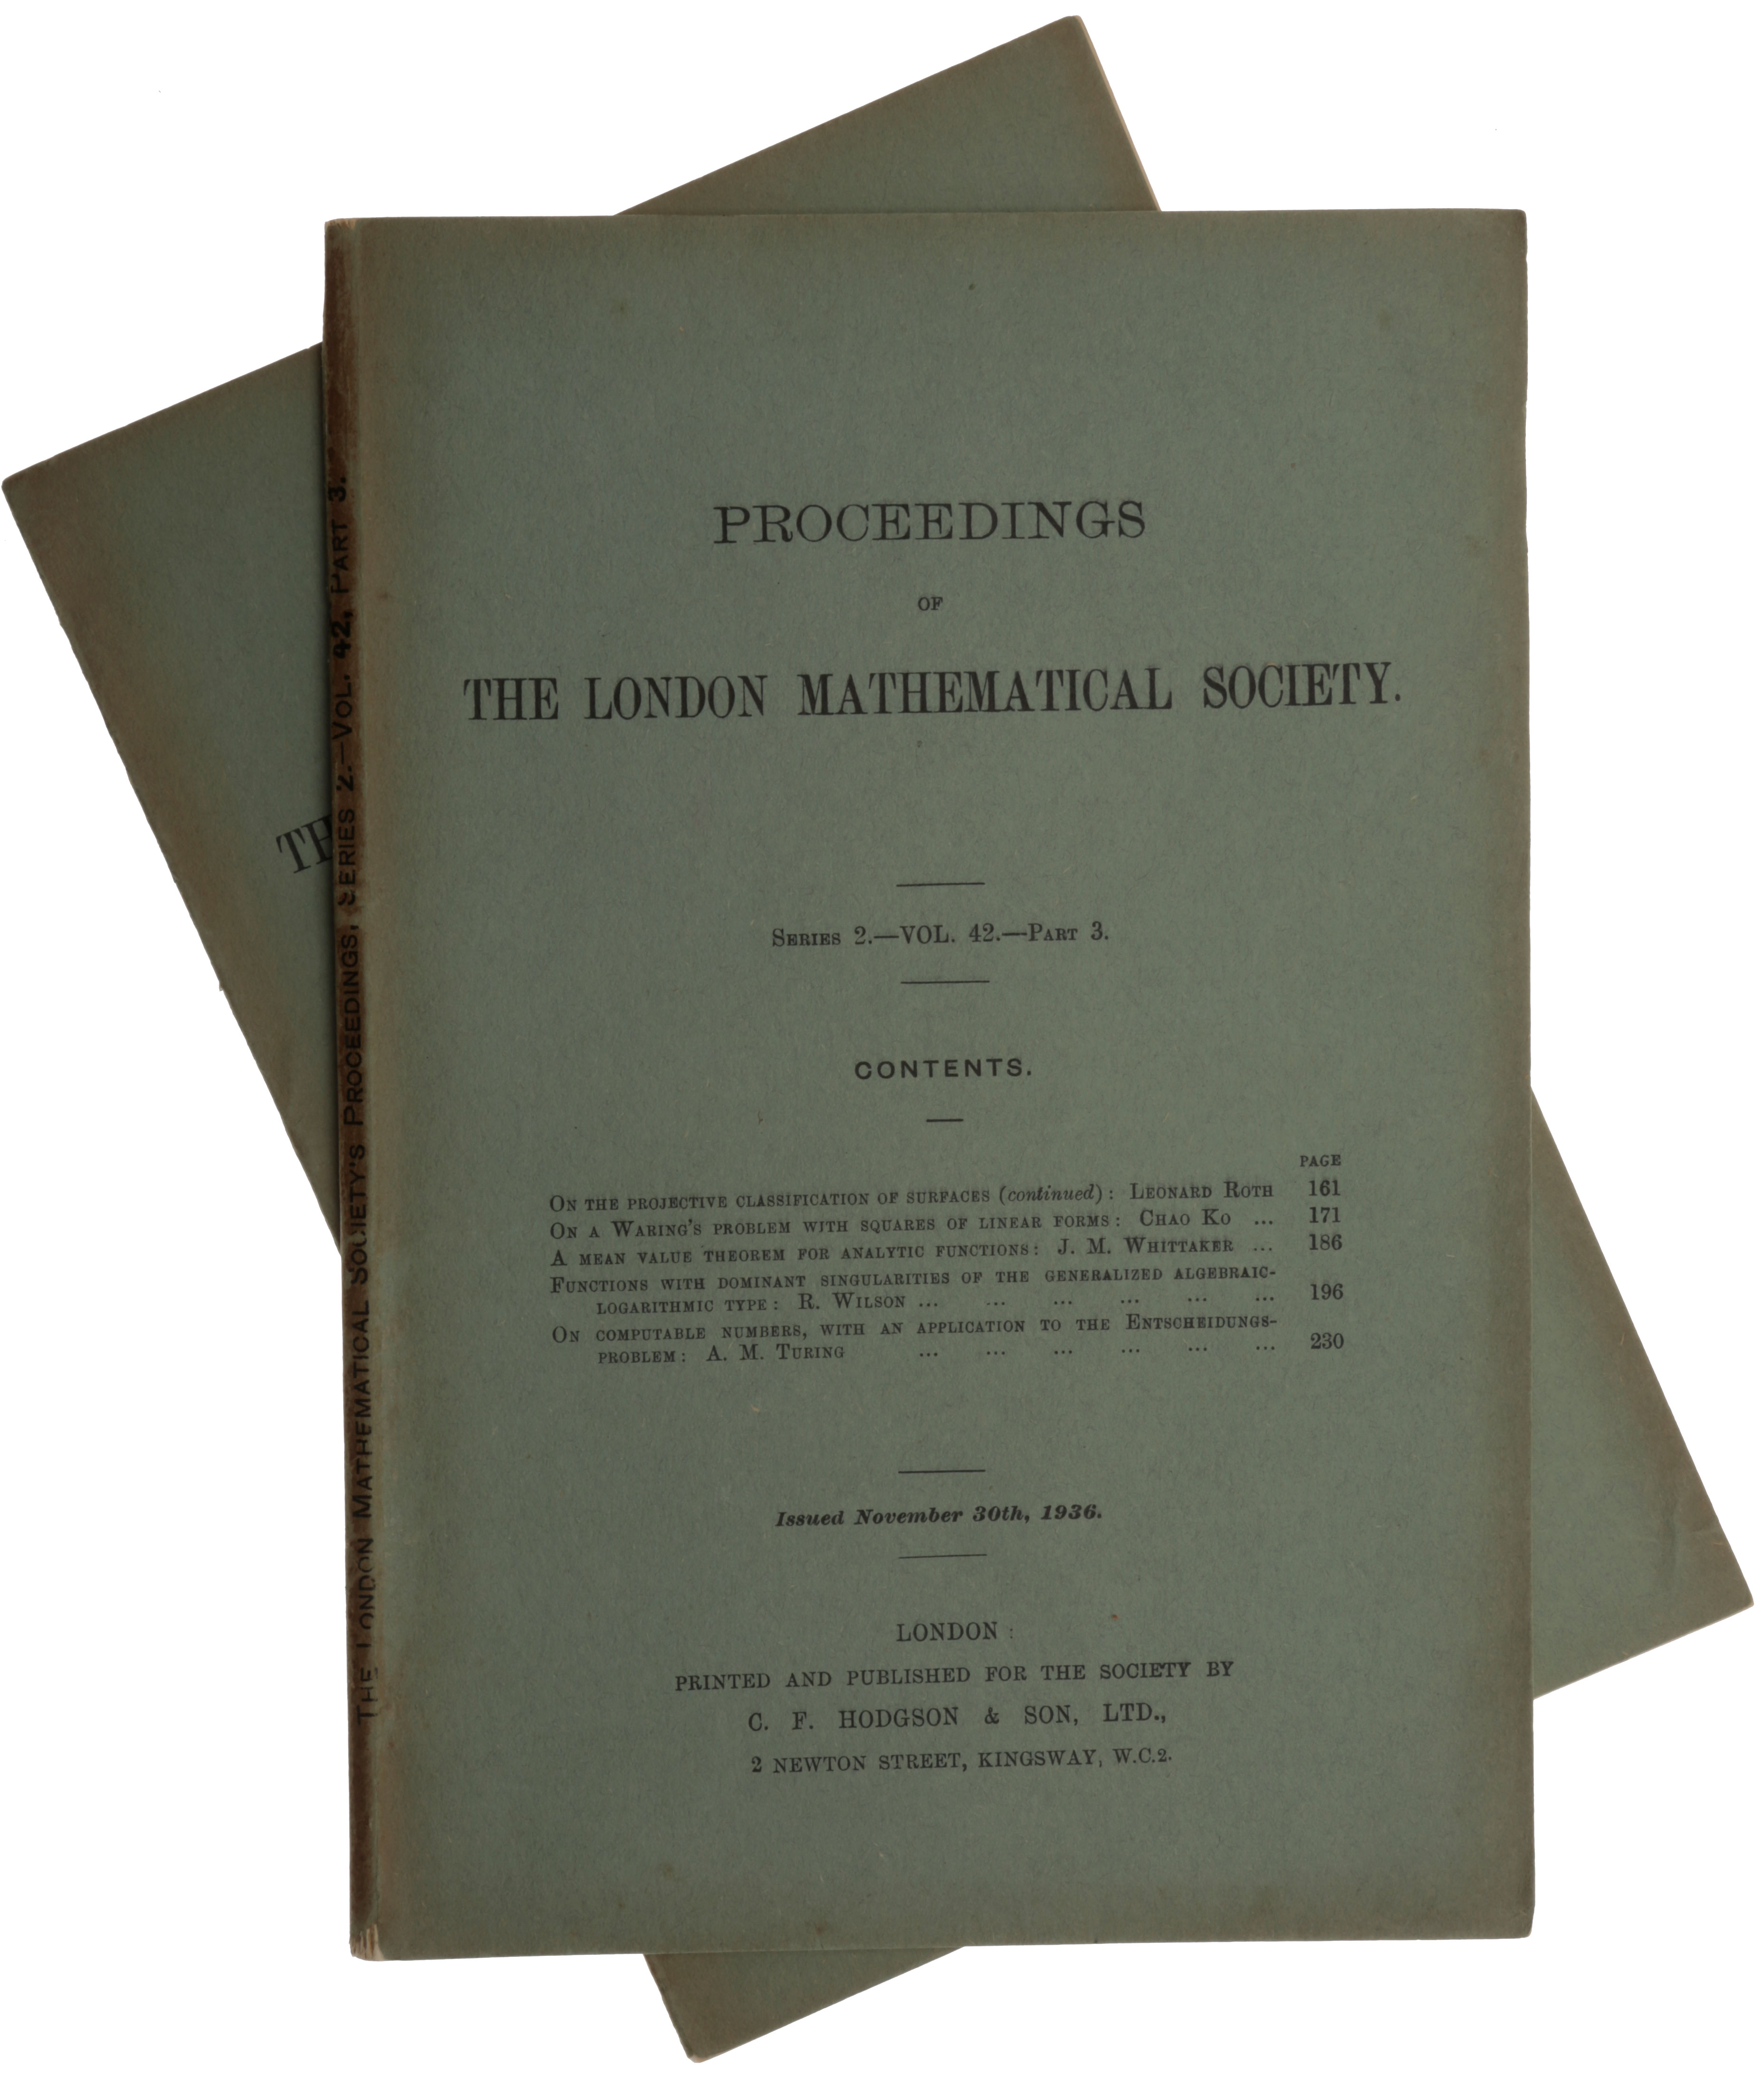 'On computable numbers, with an application to the Entscheidungsproblem,' pp. 230-265 in Proceedings of the London Mathematical Society, series 2, vol. 42, part 3, November 30, 1936 & part 4, December 23, 1936. Alan Mathison TURING.